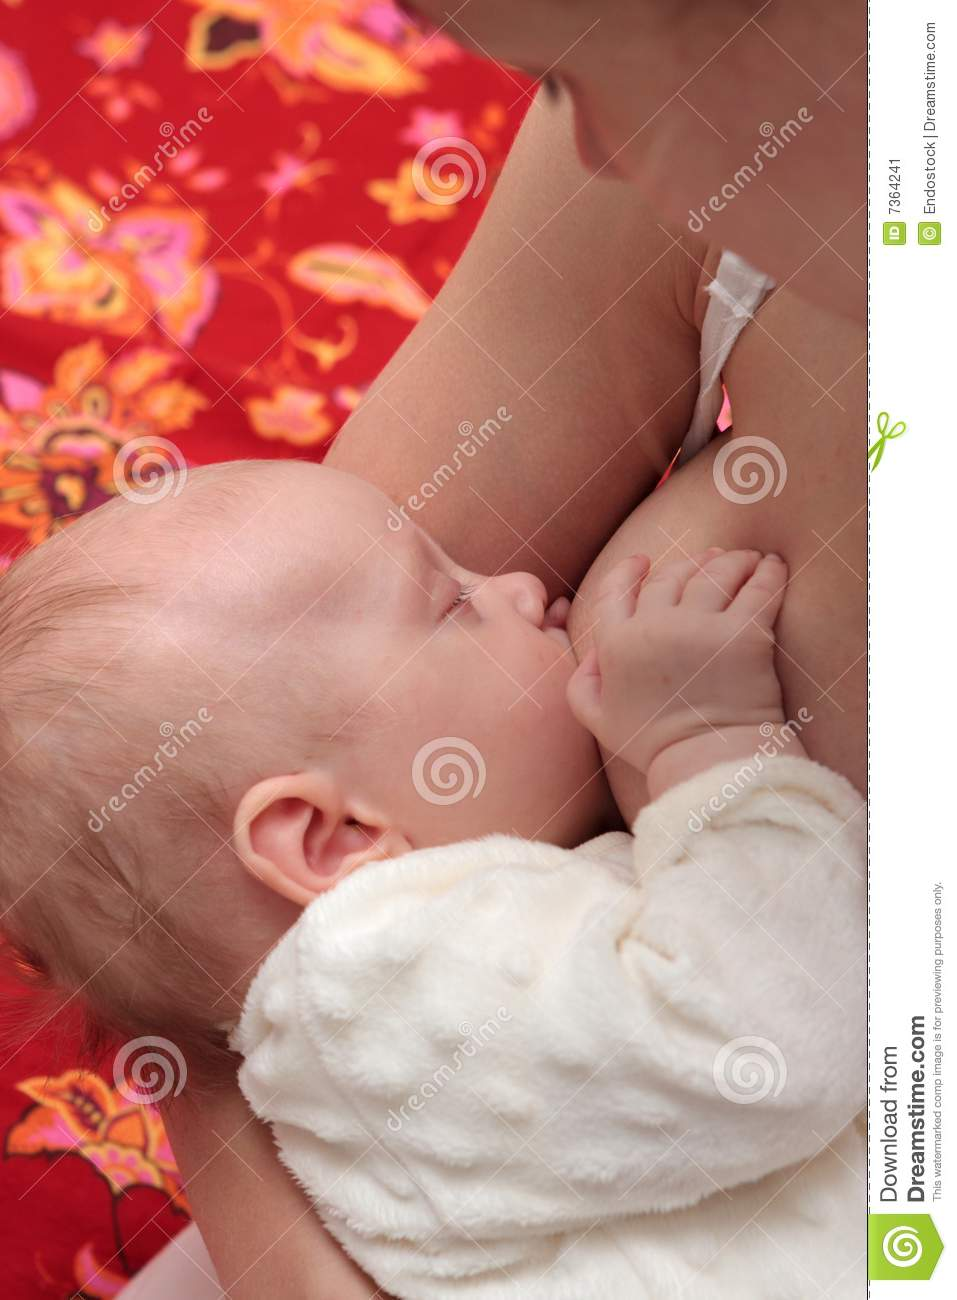 Baby breast feed posted time can mean?